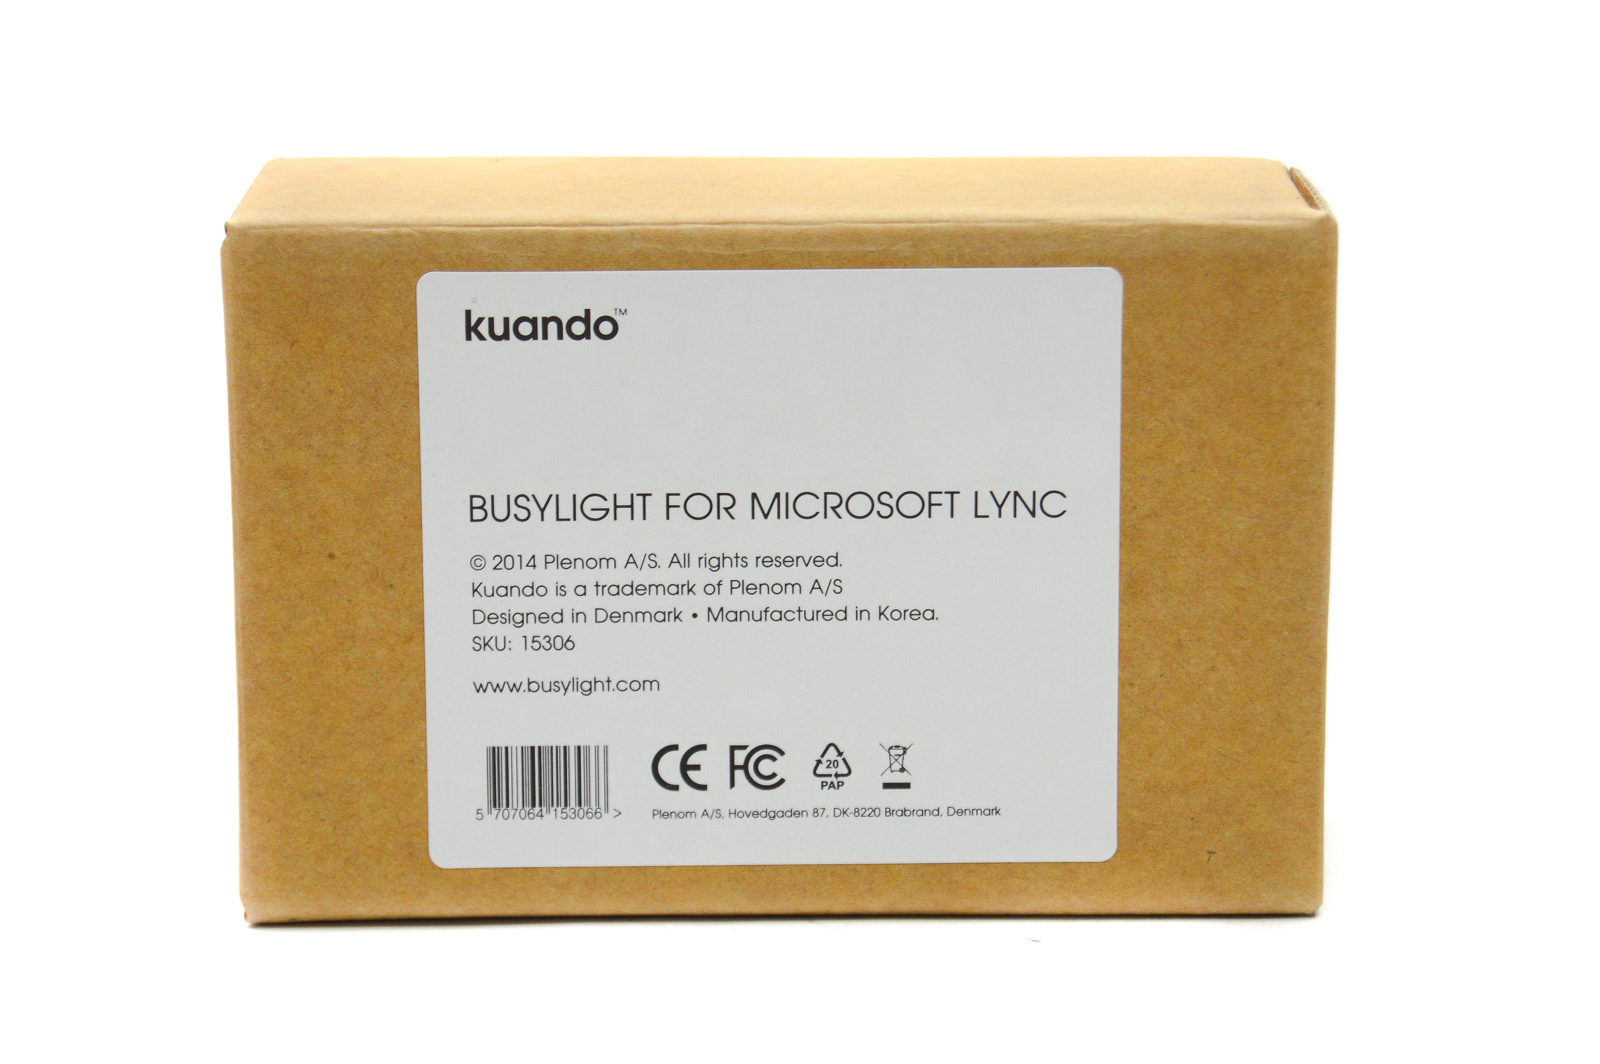 x2 New Kuando 15306 Busylight for Microsoft Lync and Skype for Business